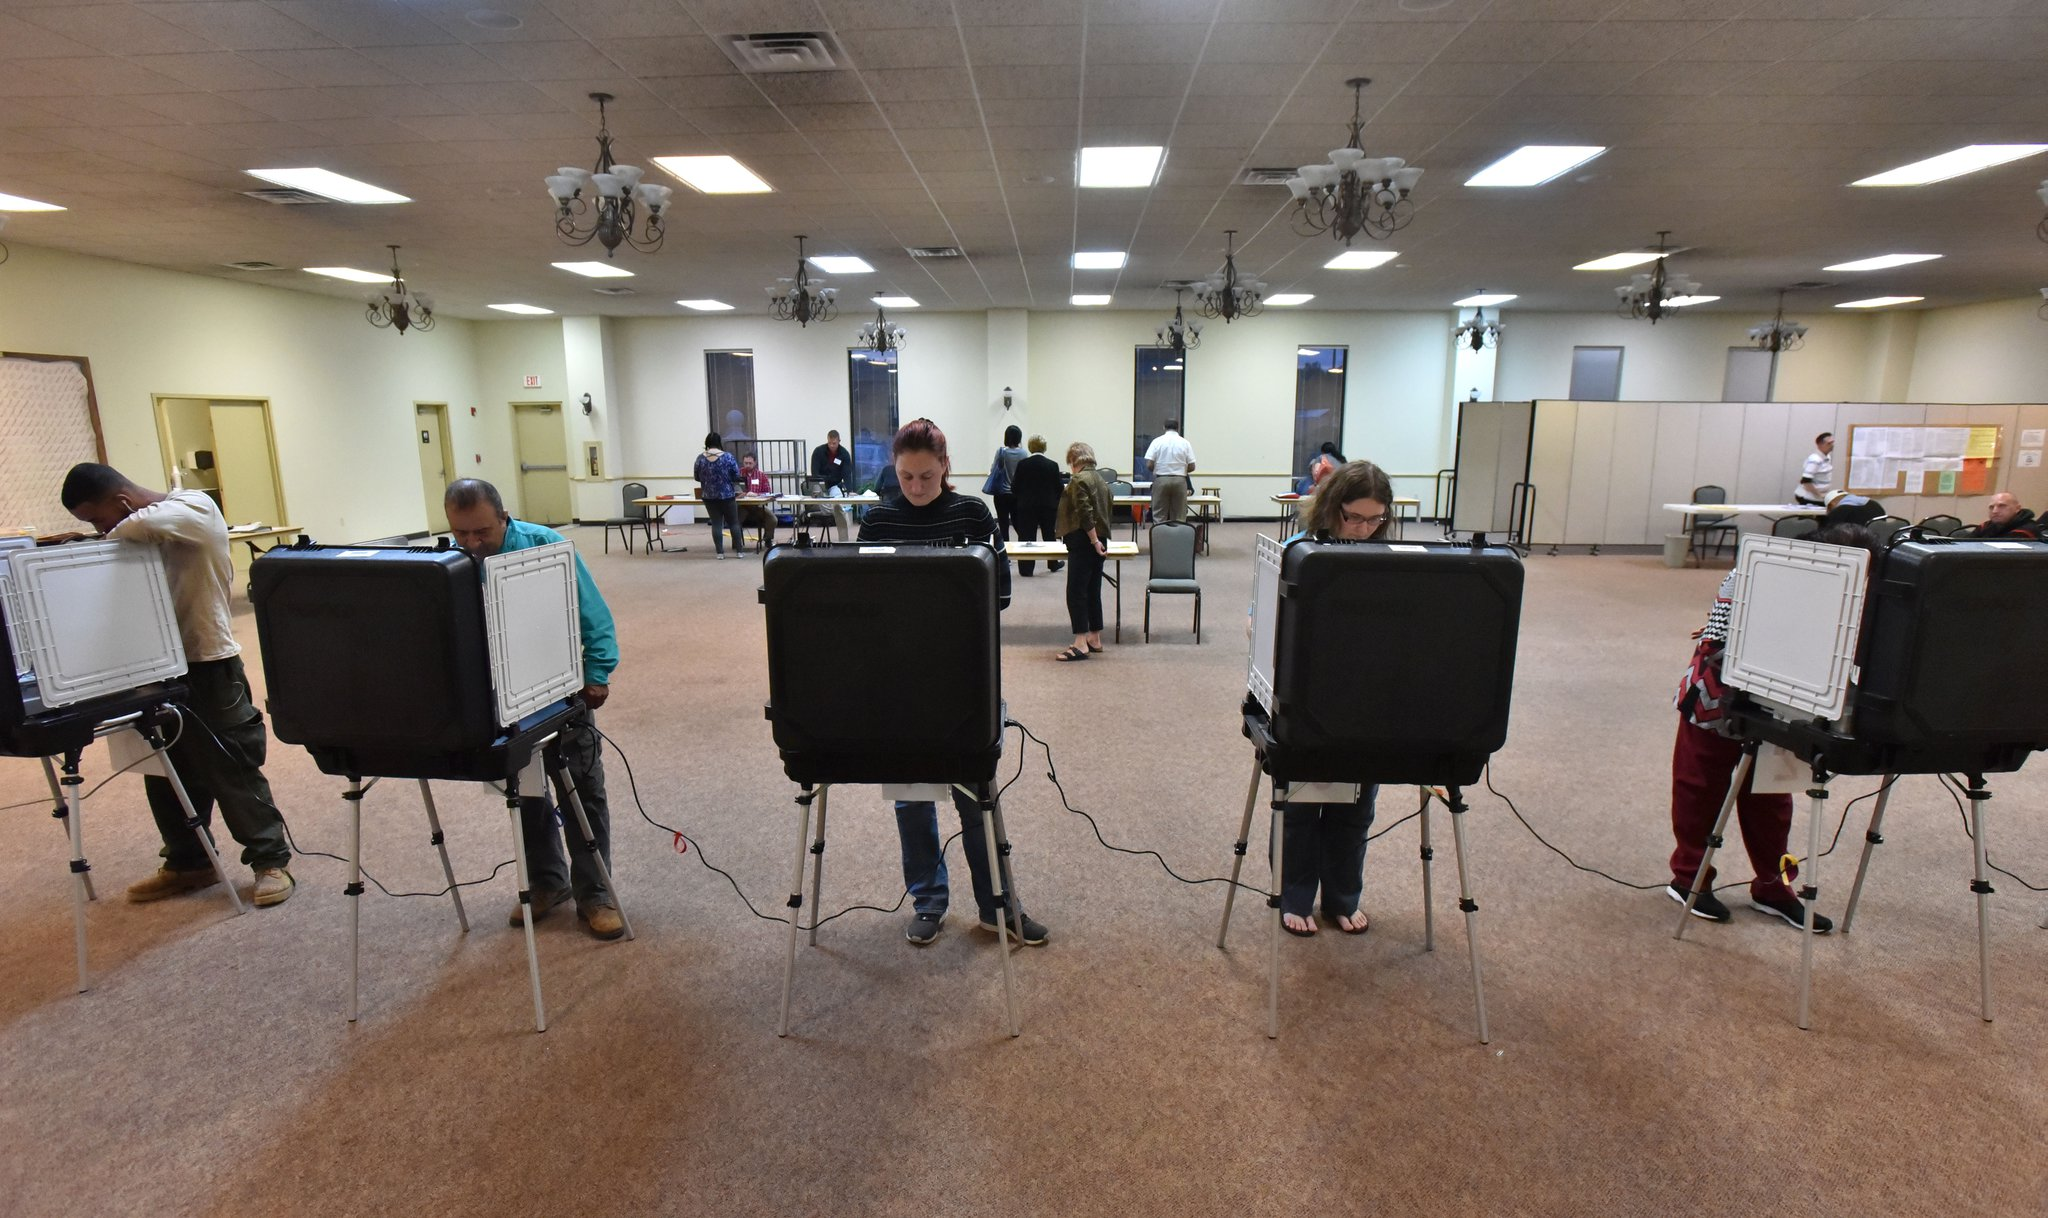 High rate of absentee ballots thrown out in Gwinnett